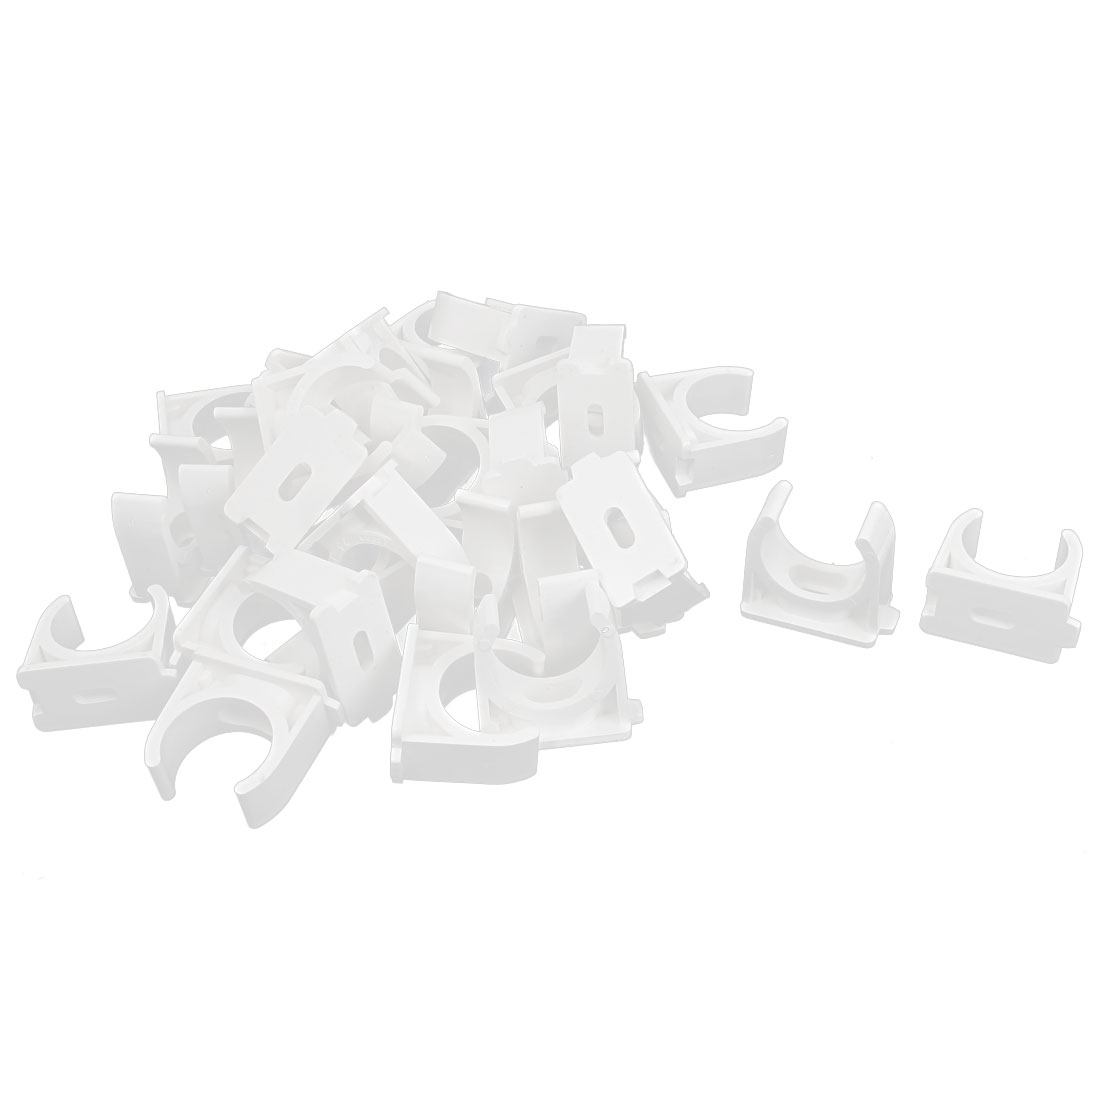 PVC Multi Function Pipe Clamps Clips Preloaded Nail White 25mm Diameter 30 Pcs